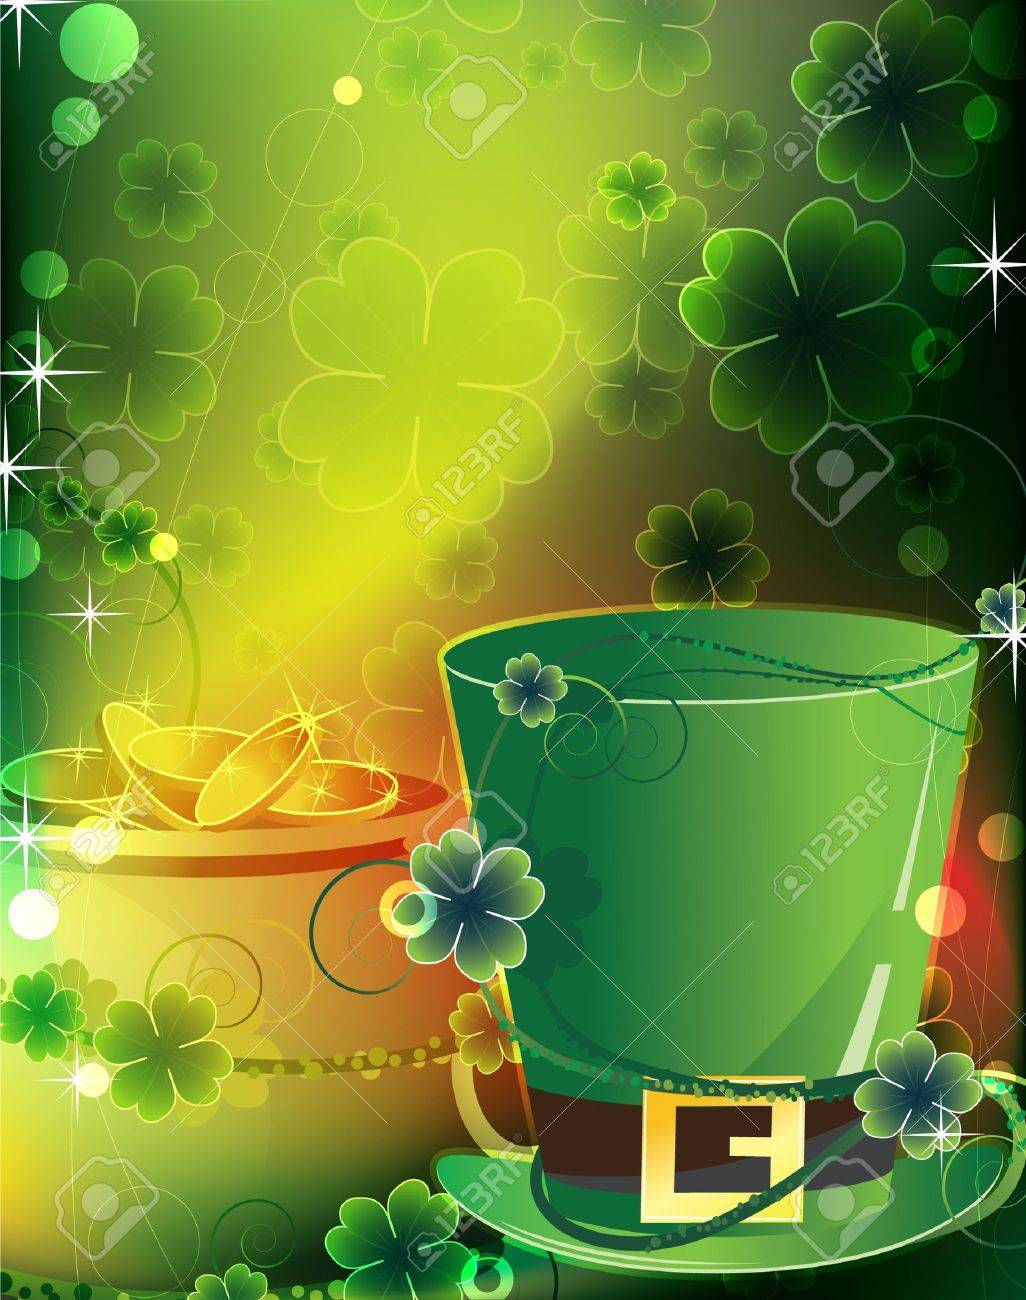 Leprechaun hat and a pot of gold on floral background St Patrick s greeting card - 12828614